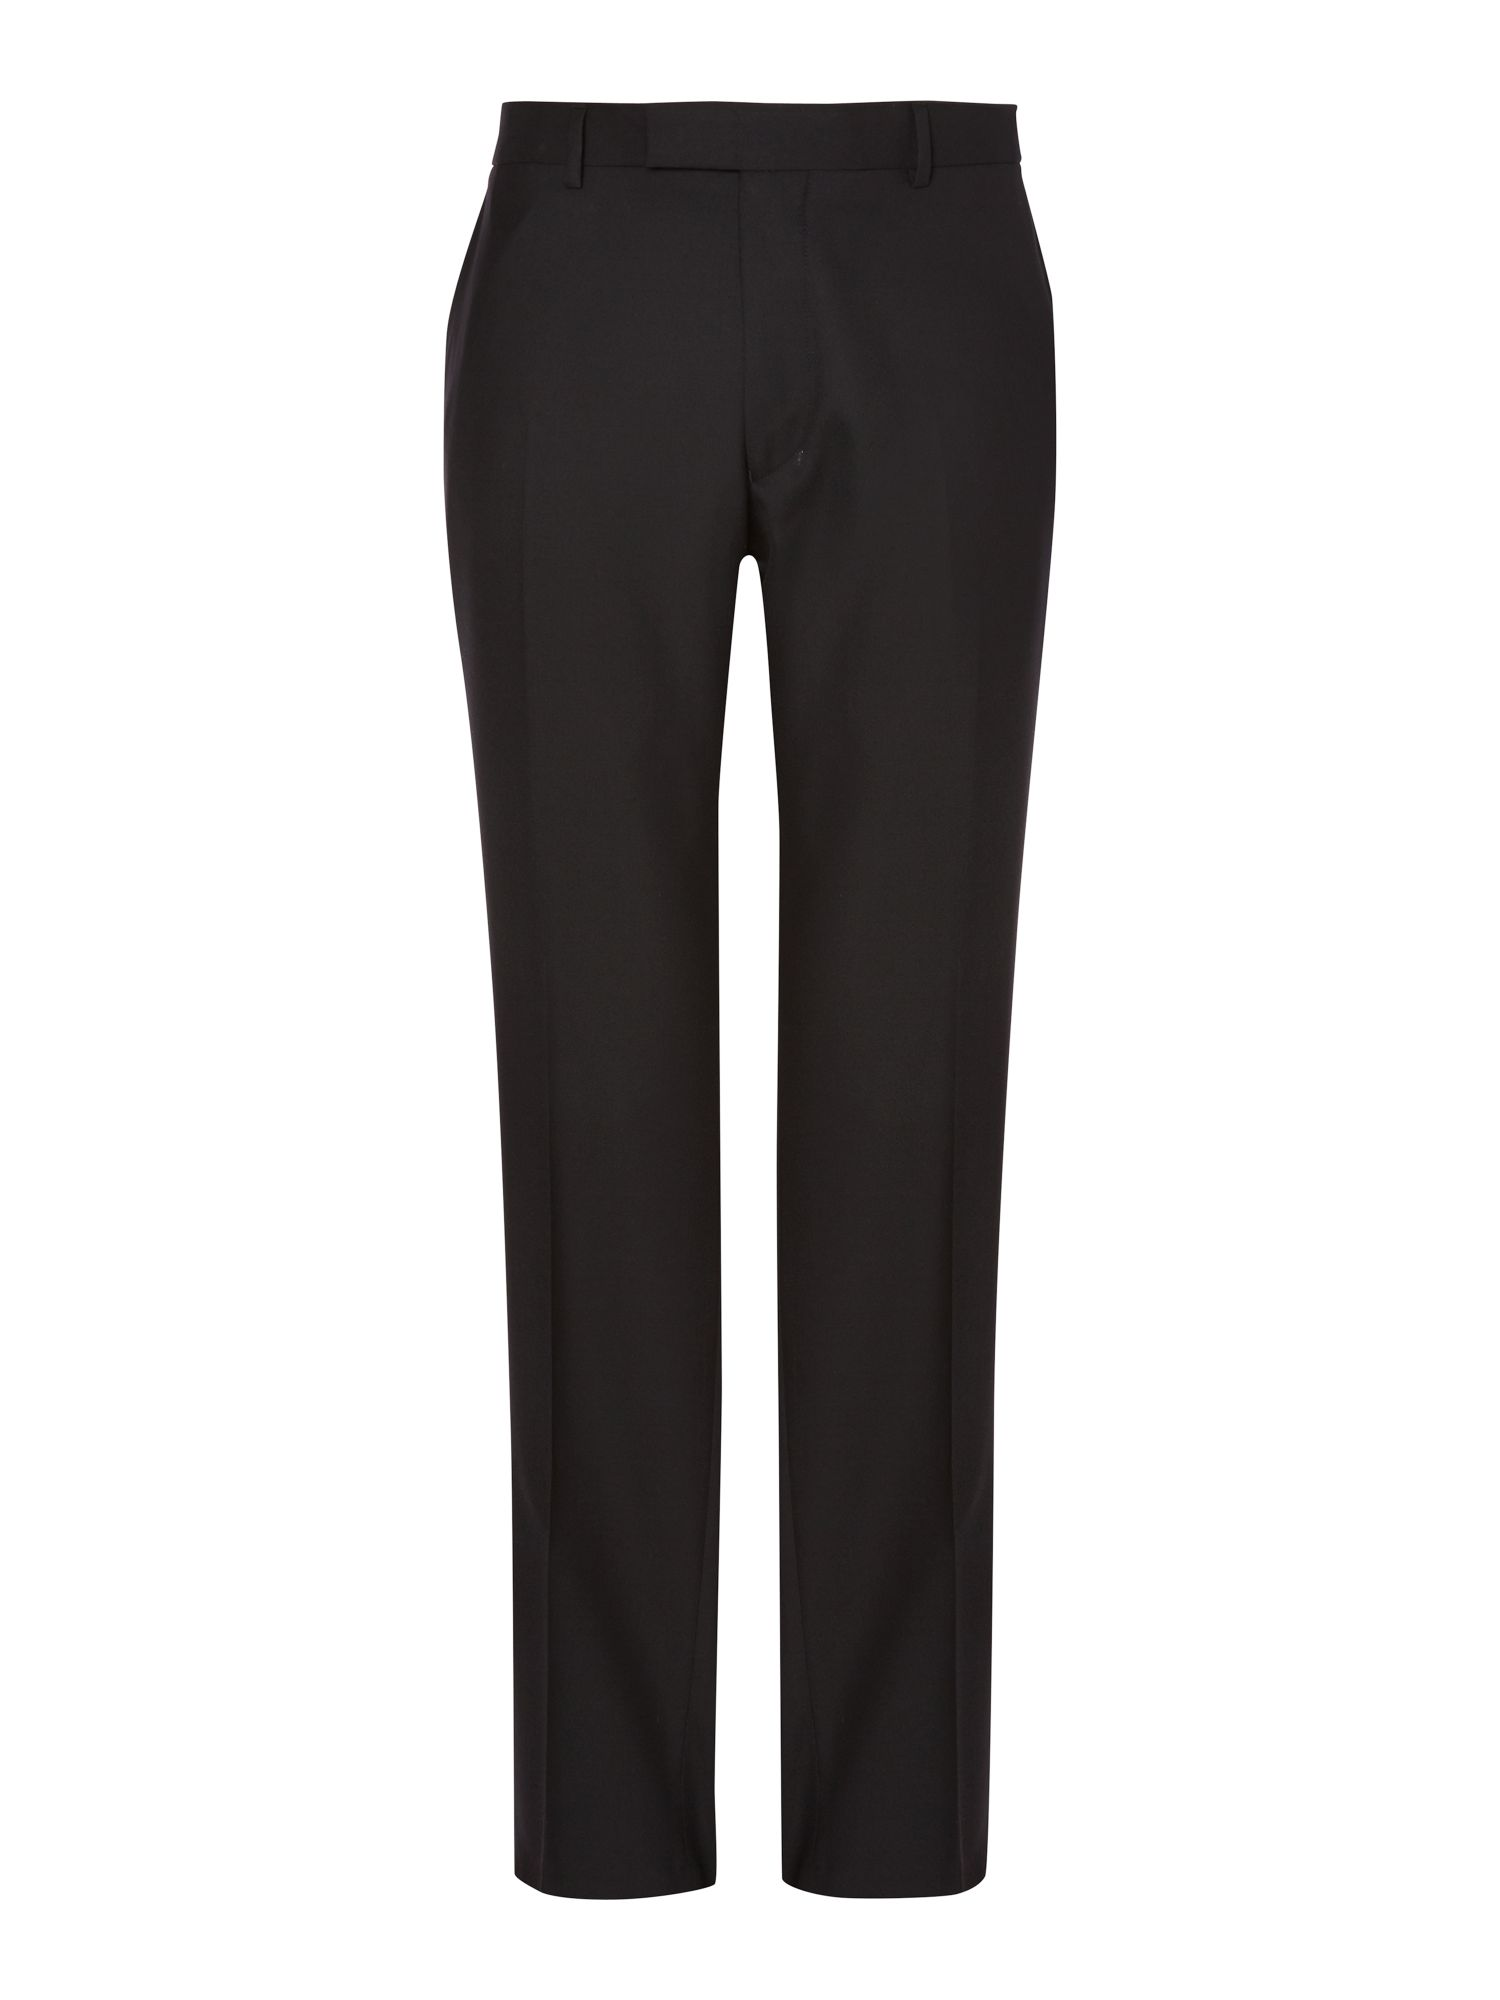 Plain twill formal suit trouser